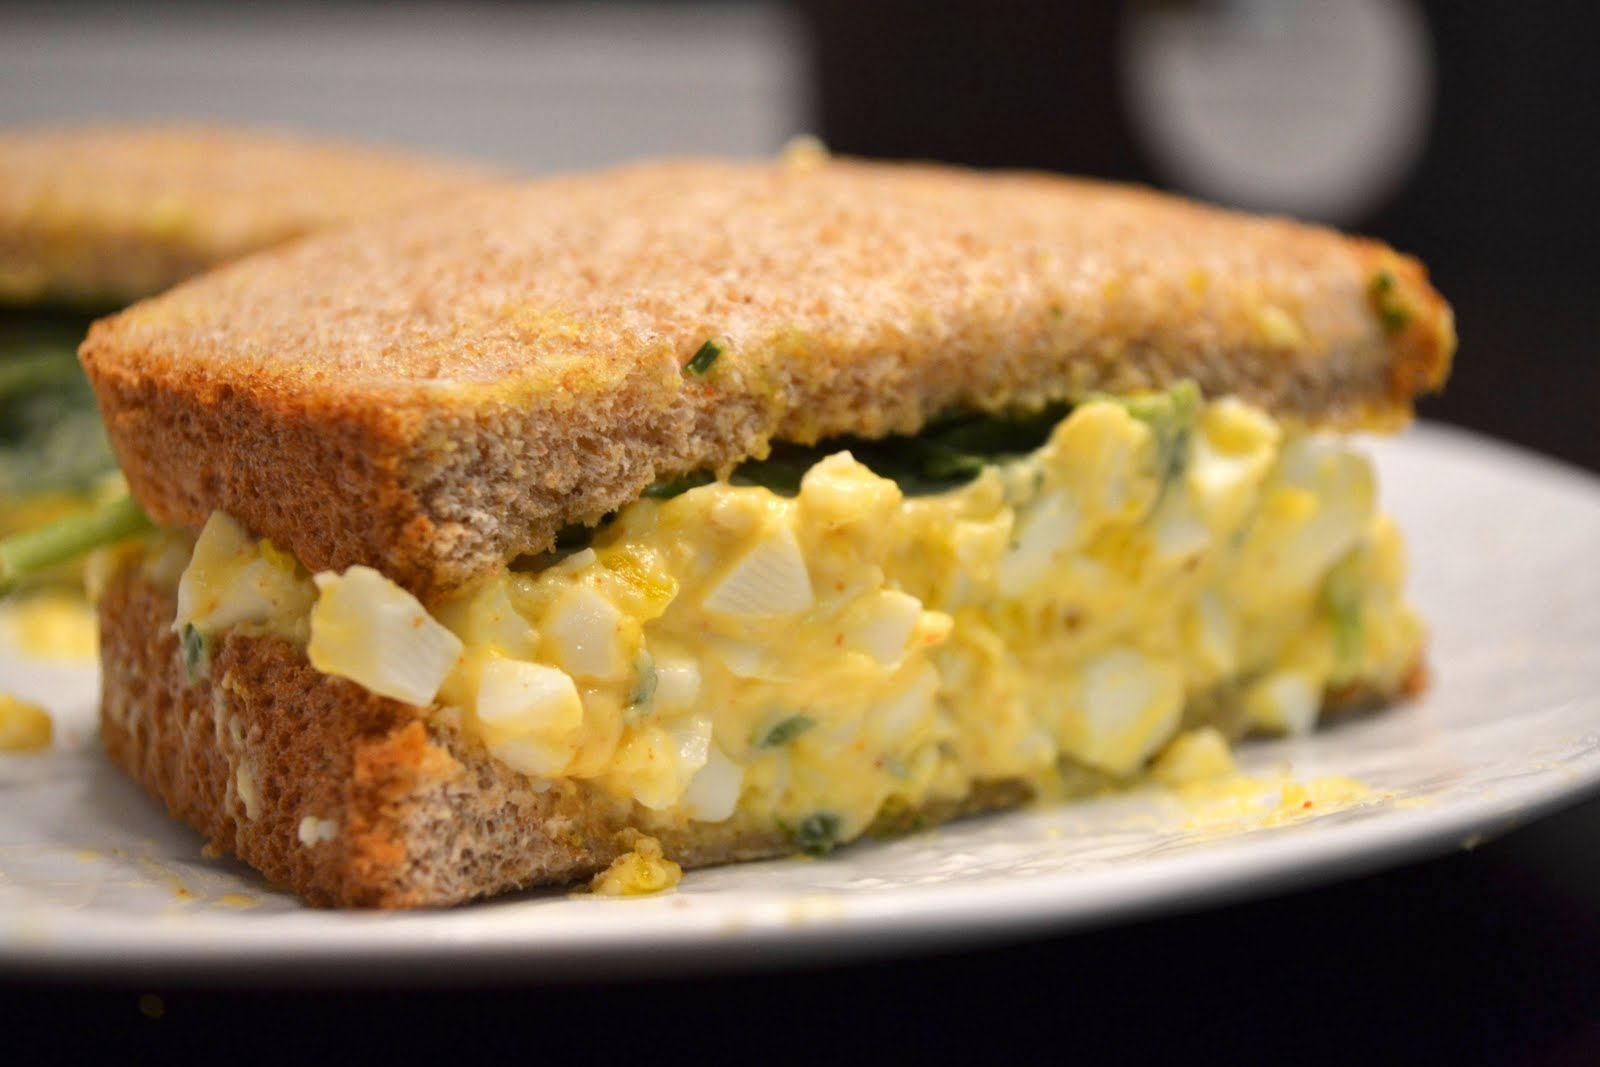 Just Putzing Around the Kitchen: Egg Salad Sandwich